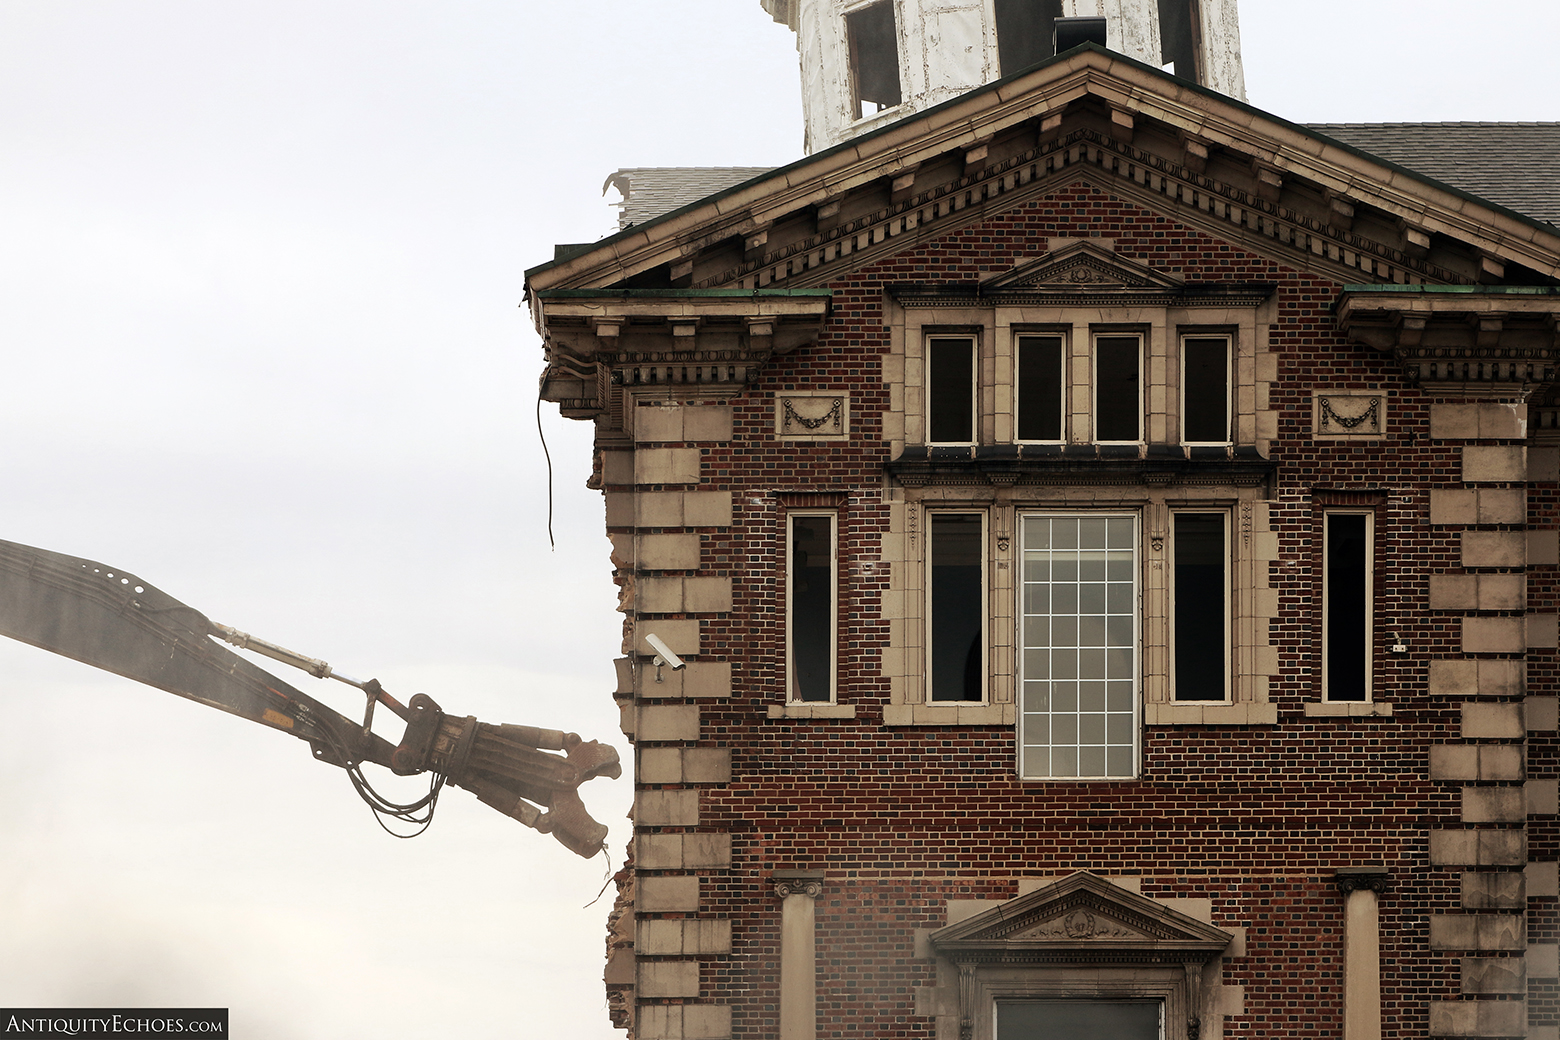 Allentown State Hospital - Demolition - The Spire Begins to Fall